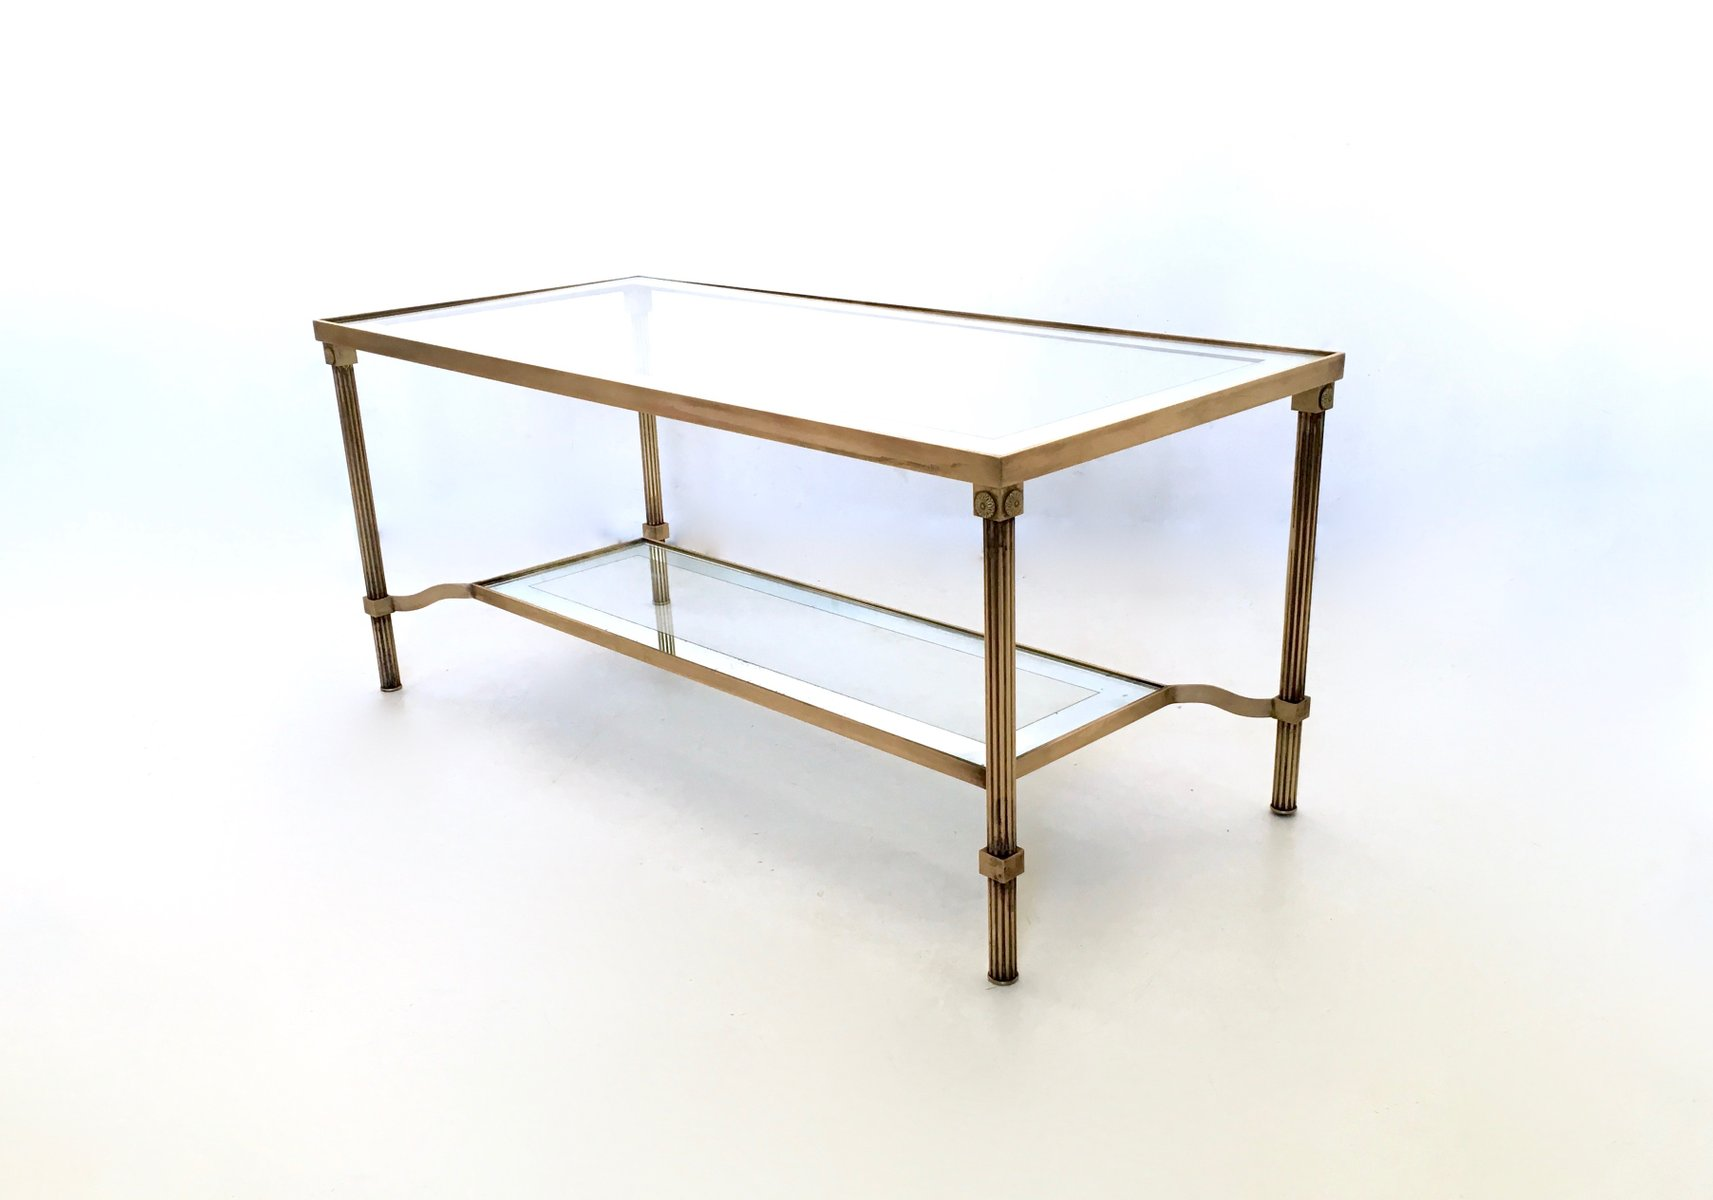 italian two tiered brass glass coffee table 1950s for sale at pamono. Black Bedroom Furniture Sets. Home Design Ideas